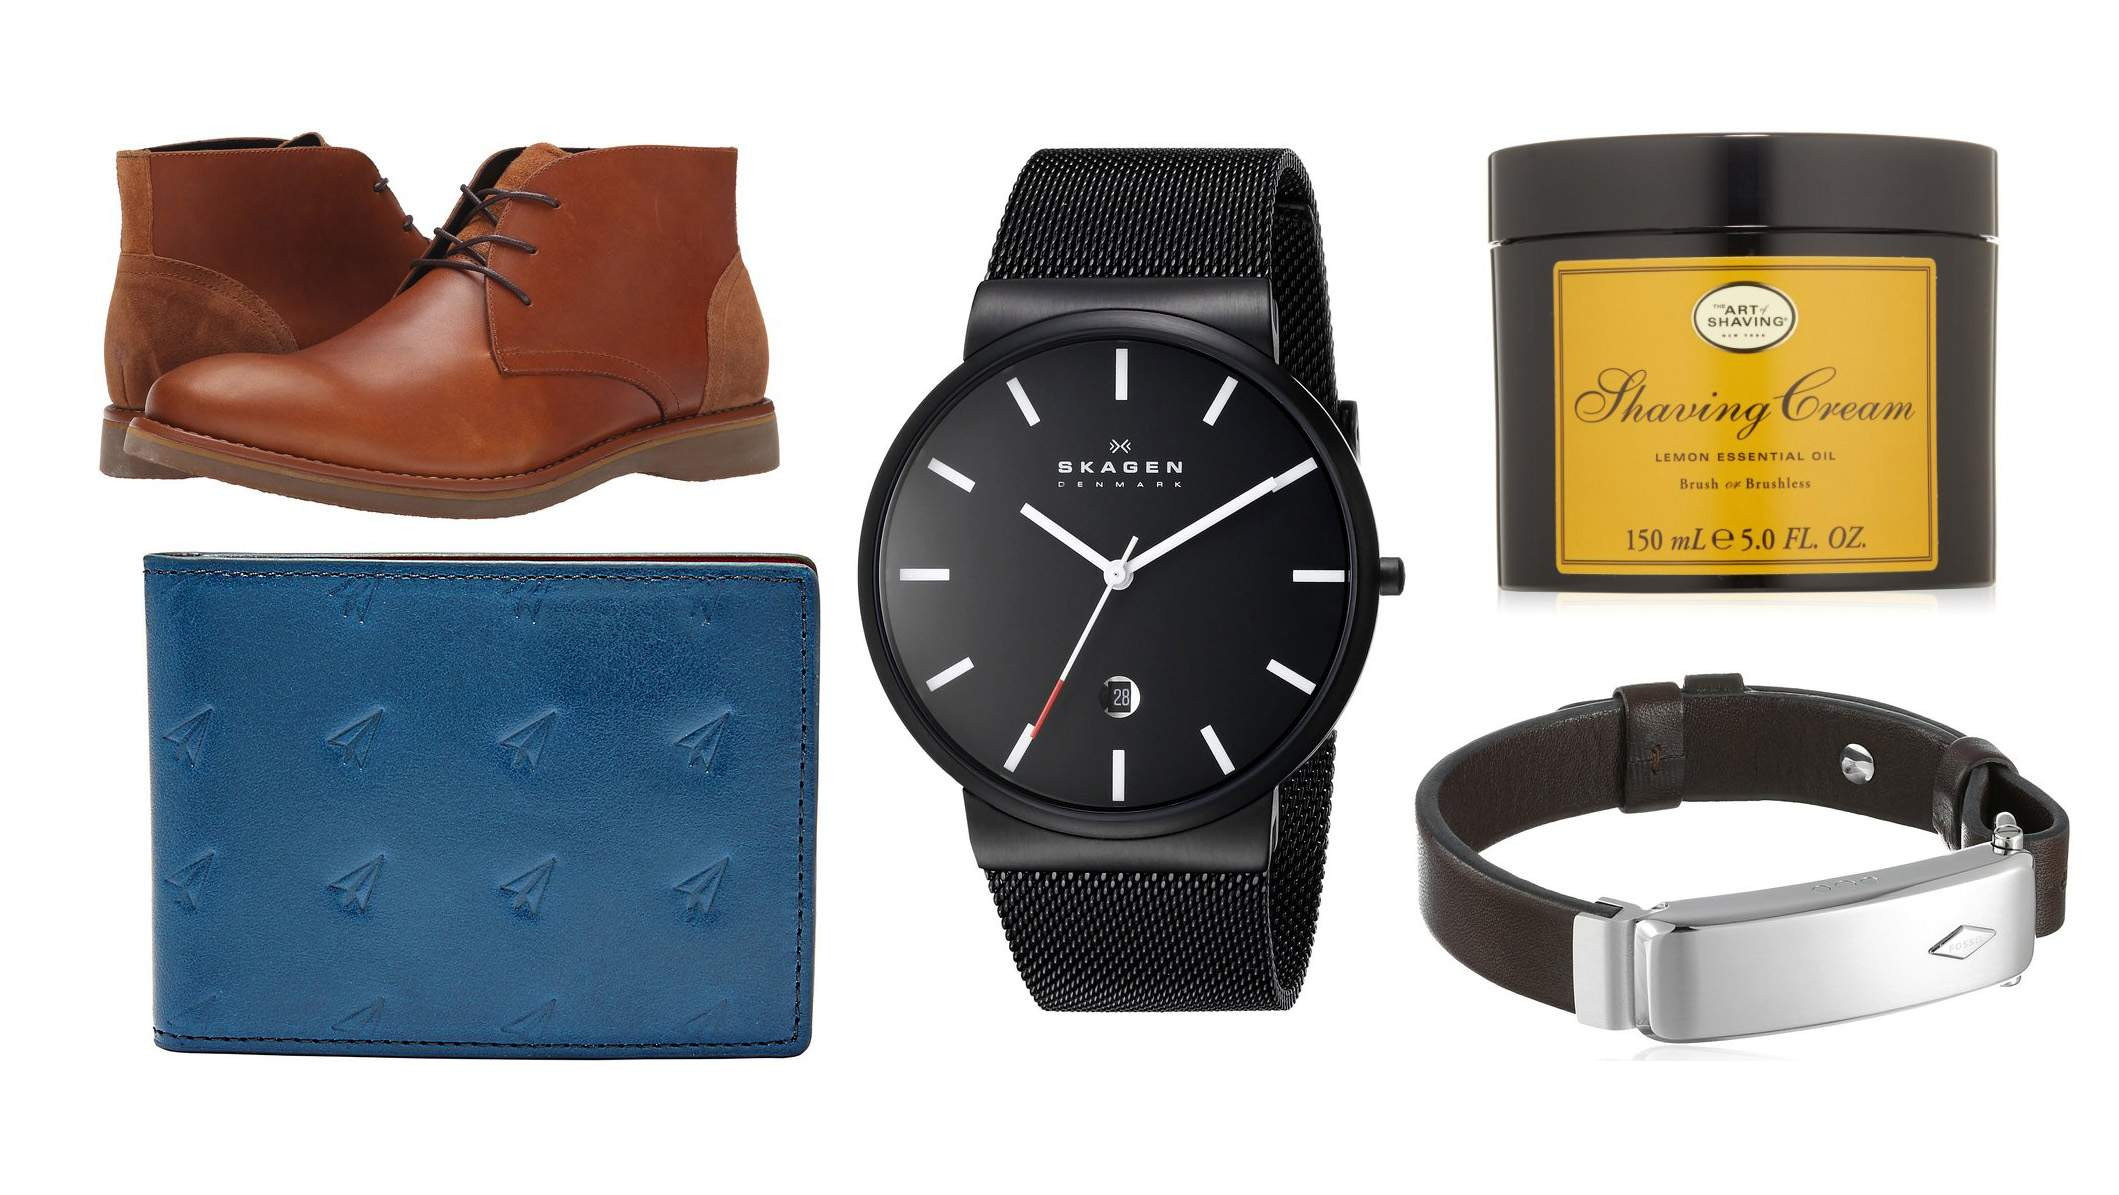 Best Guy Valentines Day Gift Ideas  Top 20 Best Valentine's Day Gifts for Men